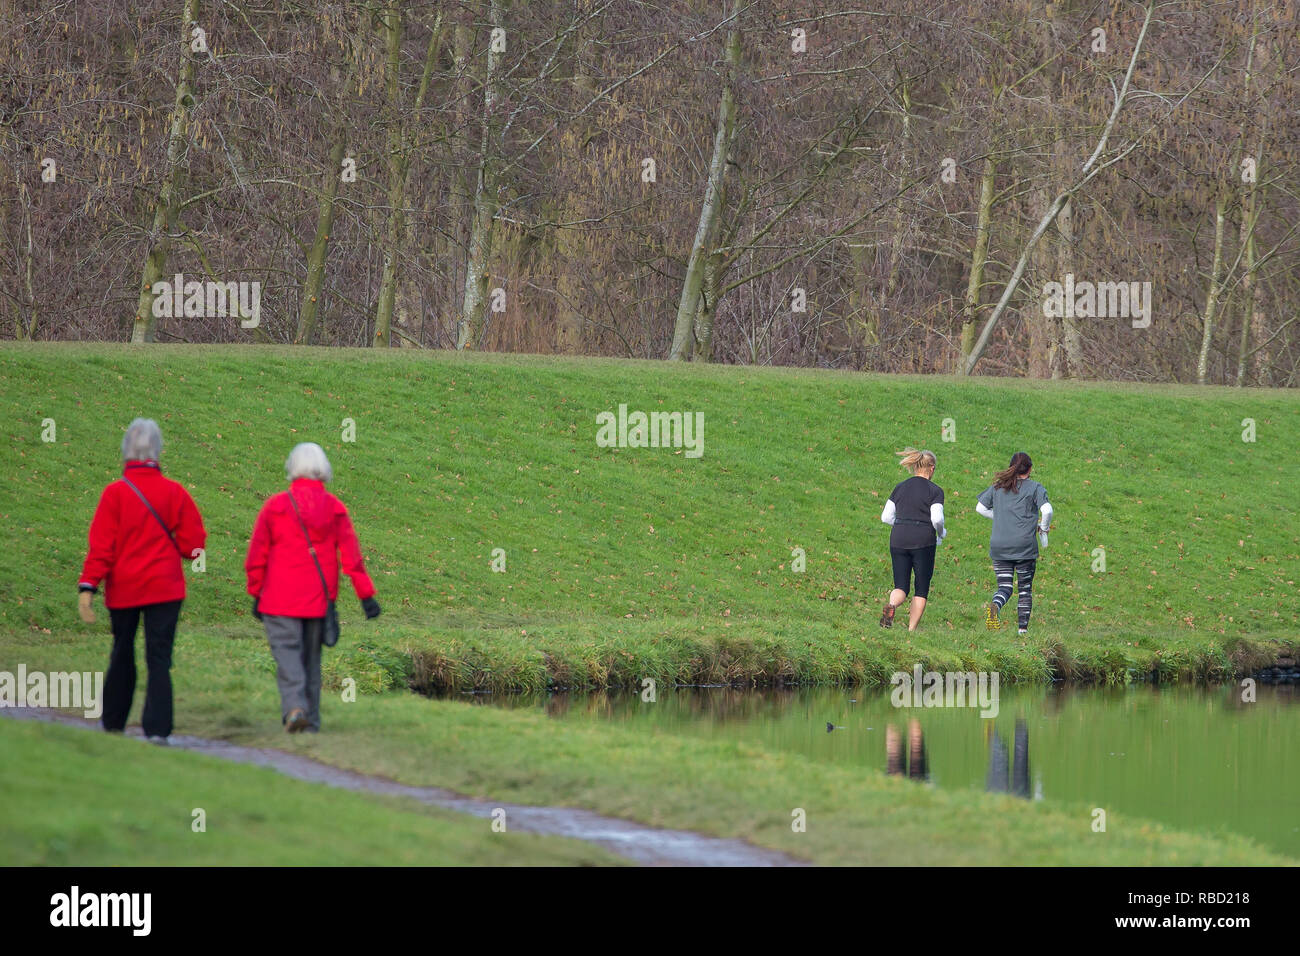 Kidderminster, Worcestershire, UK. 9th January, 2019. UK weather: after a widespread frost, people are out keeping fit and enjoying the morning, winter sunshine. Feeling cold with a north-westerly breeze, folk wrap up to enjoy some outdoor pursuits in their local park. Credit: Lee Hudson/Alamy Live News - Stock Image